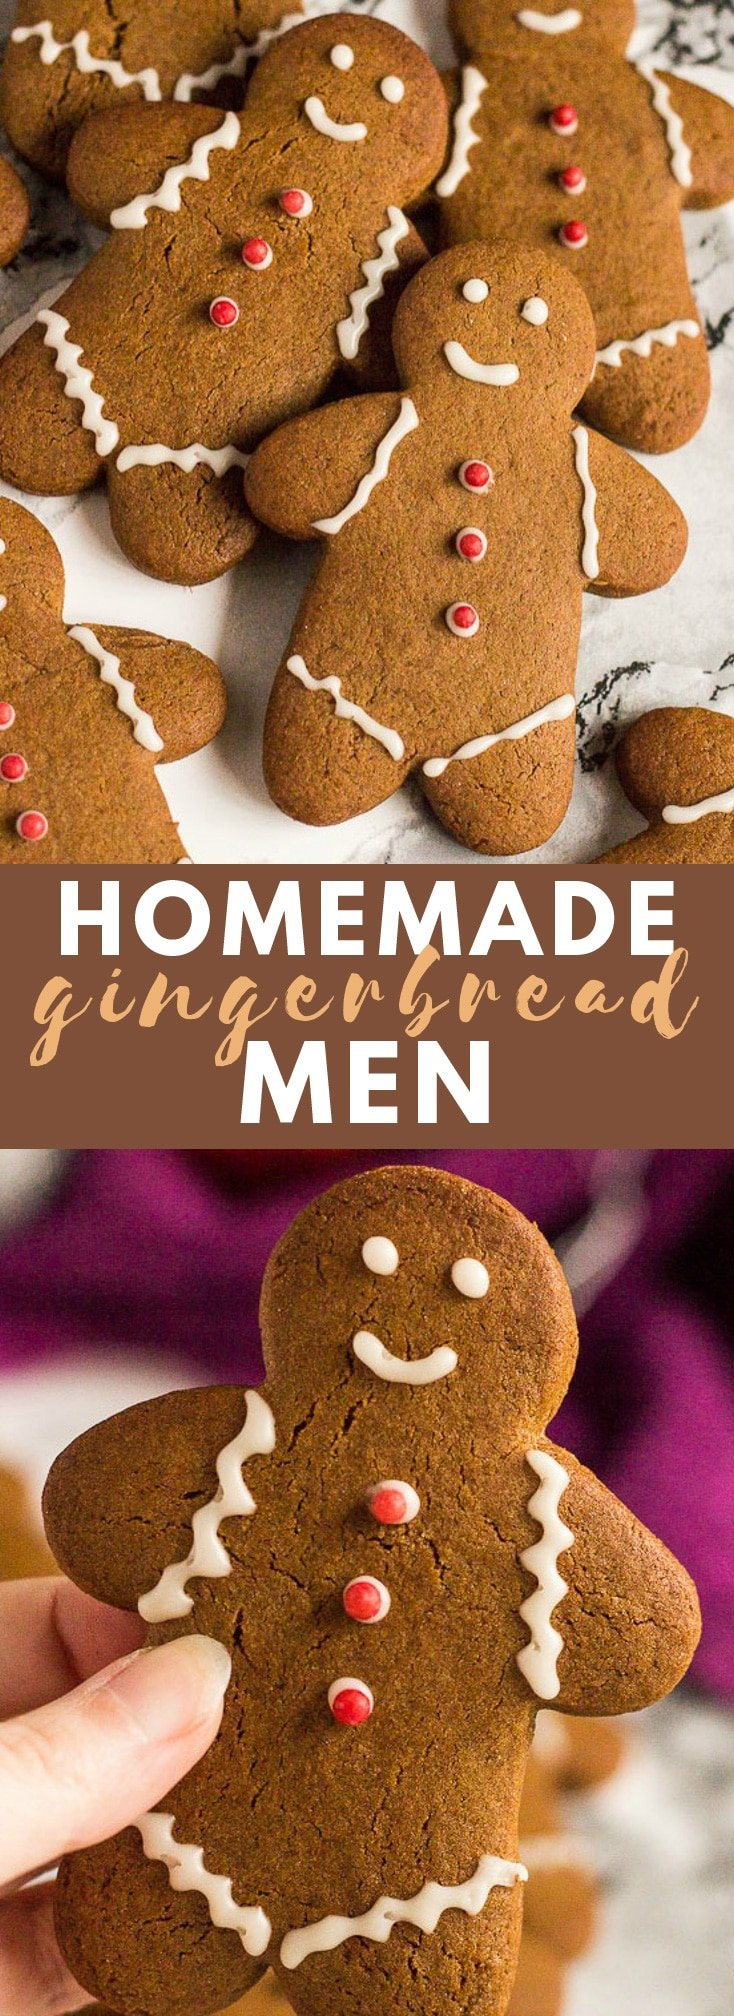 Gingerbread Men – Deliciously ginger-spiced cookies that are slightly soft on the inside, and crispy on the outside, and decorated with icing!